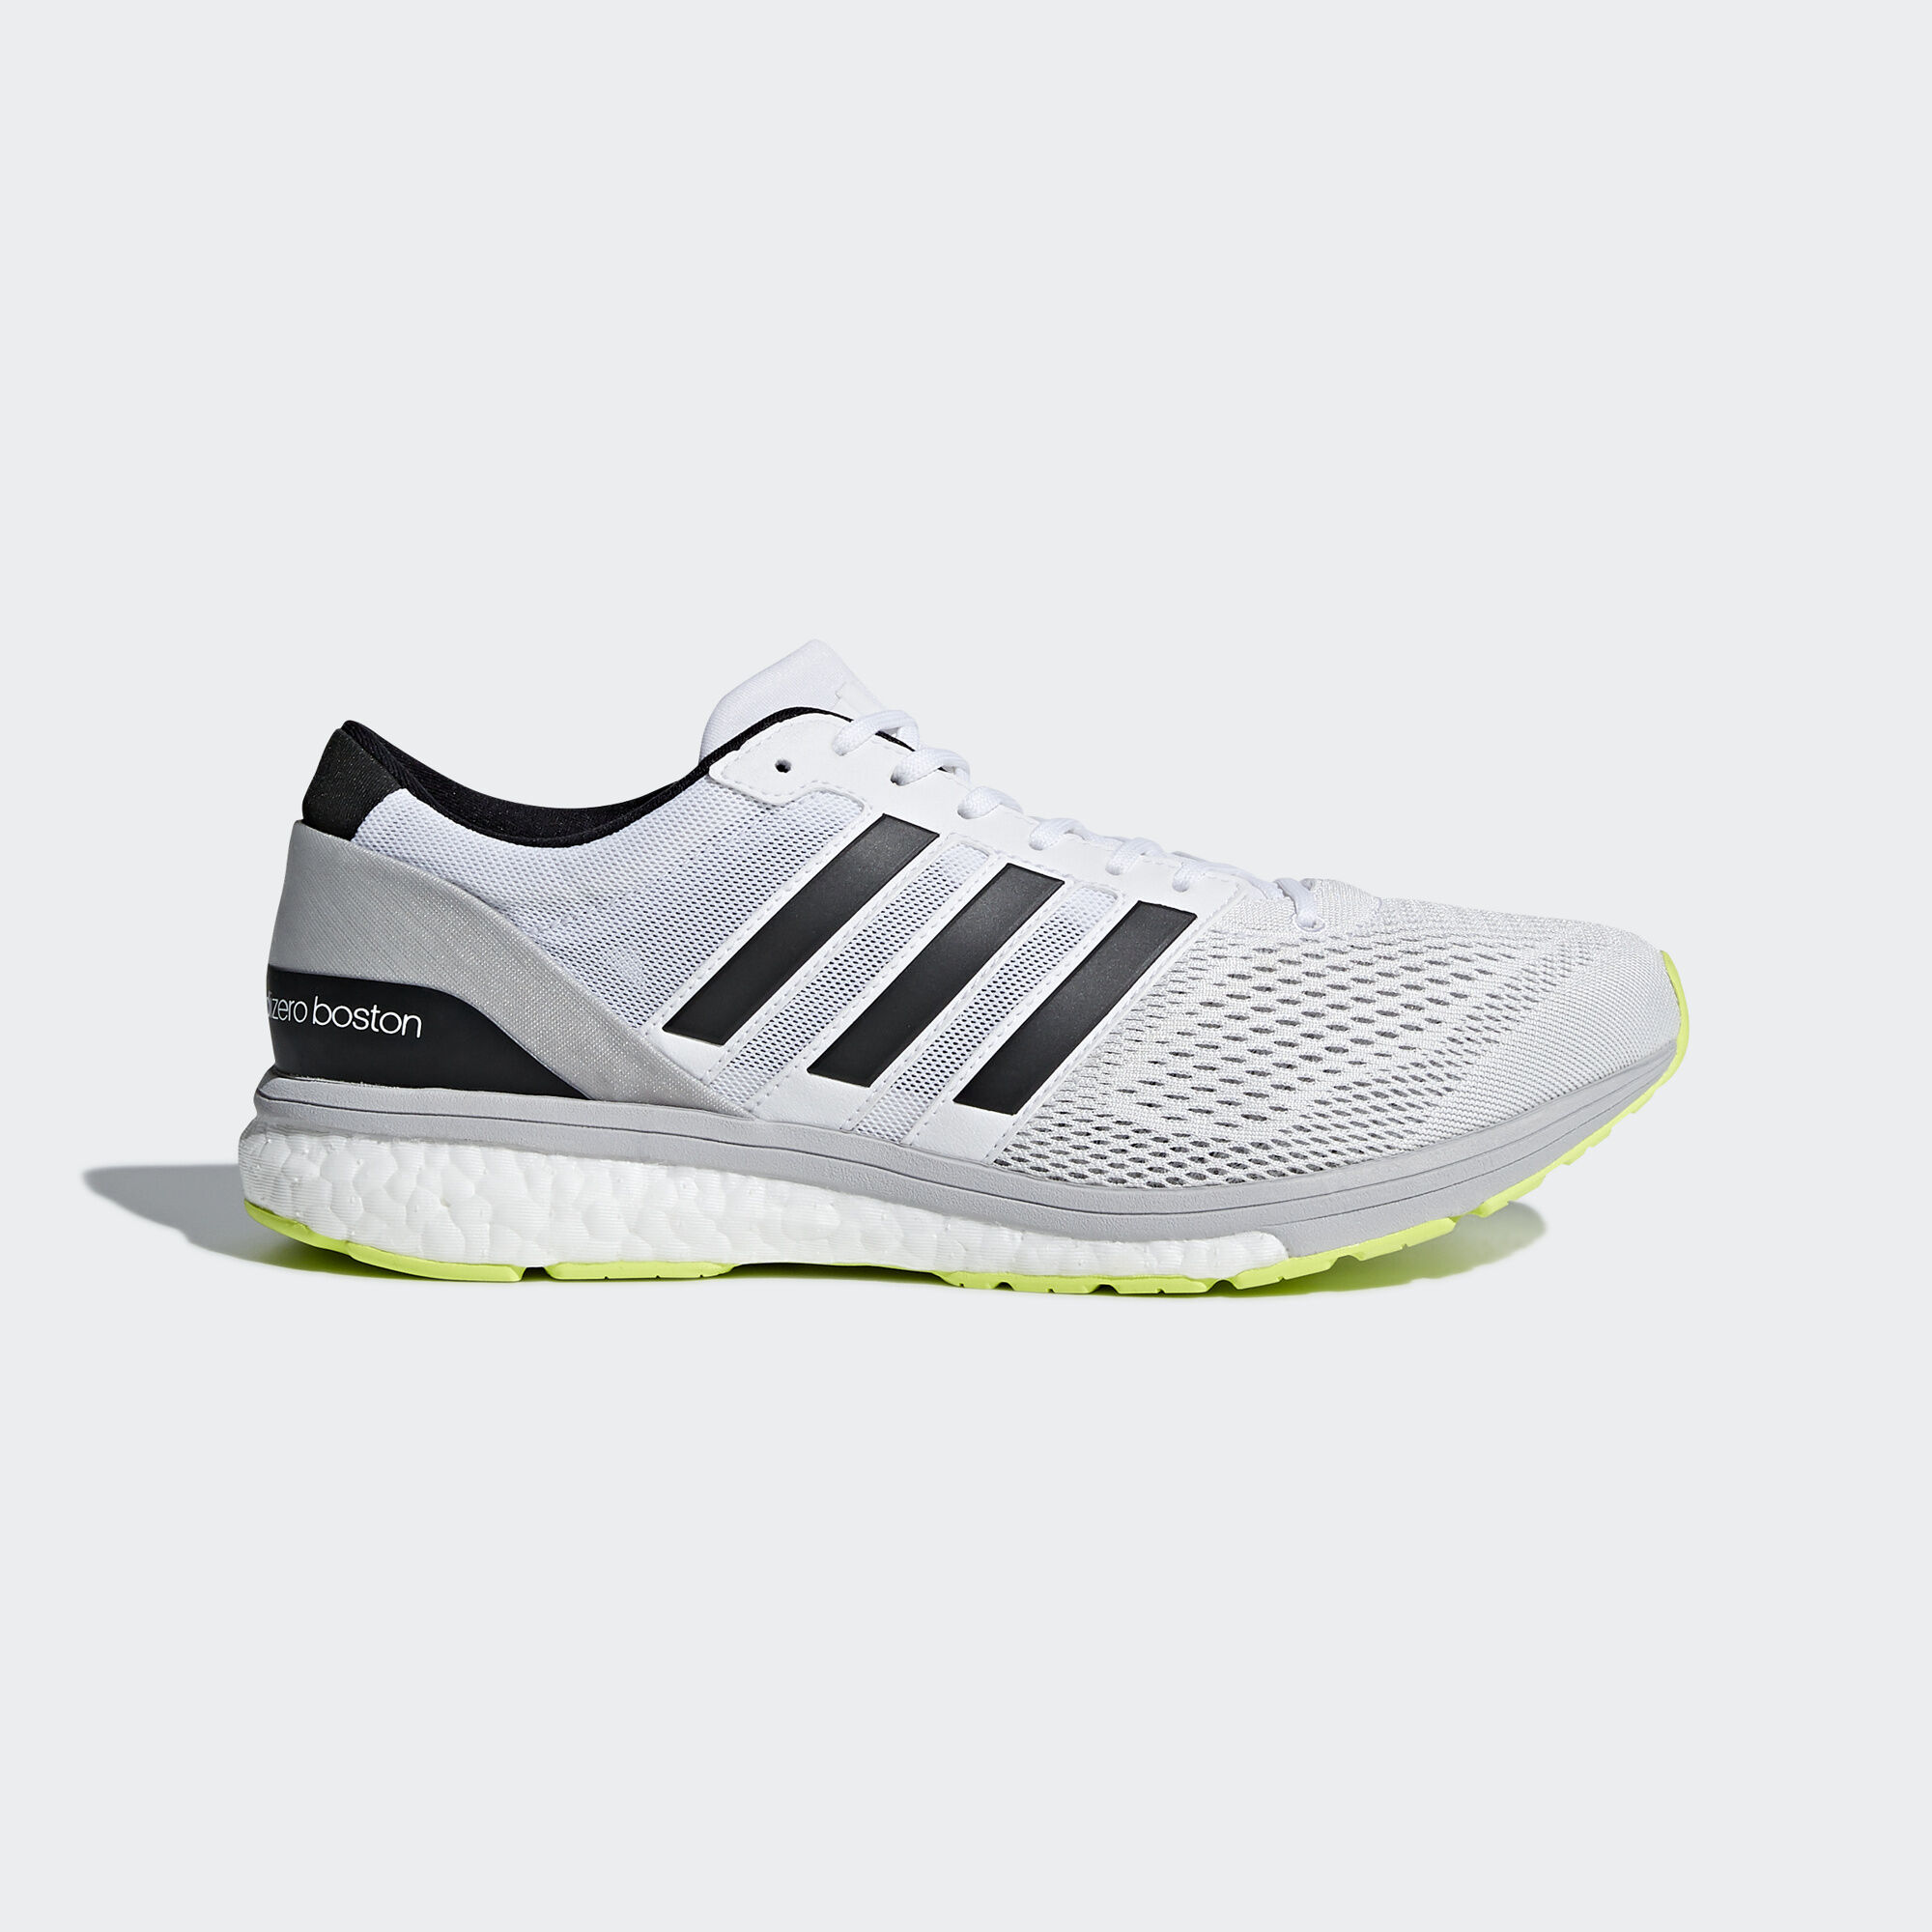 adidas shoes in boston